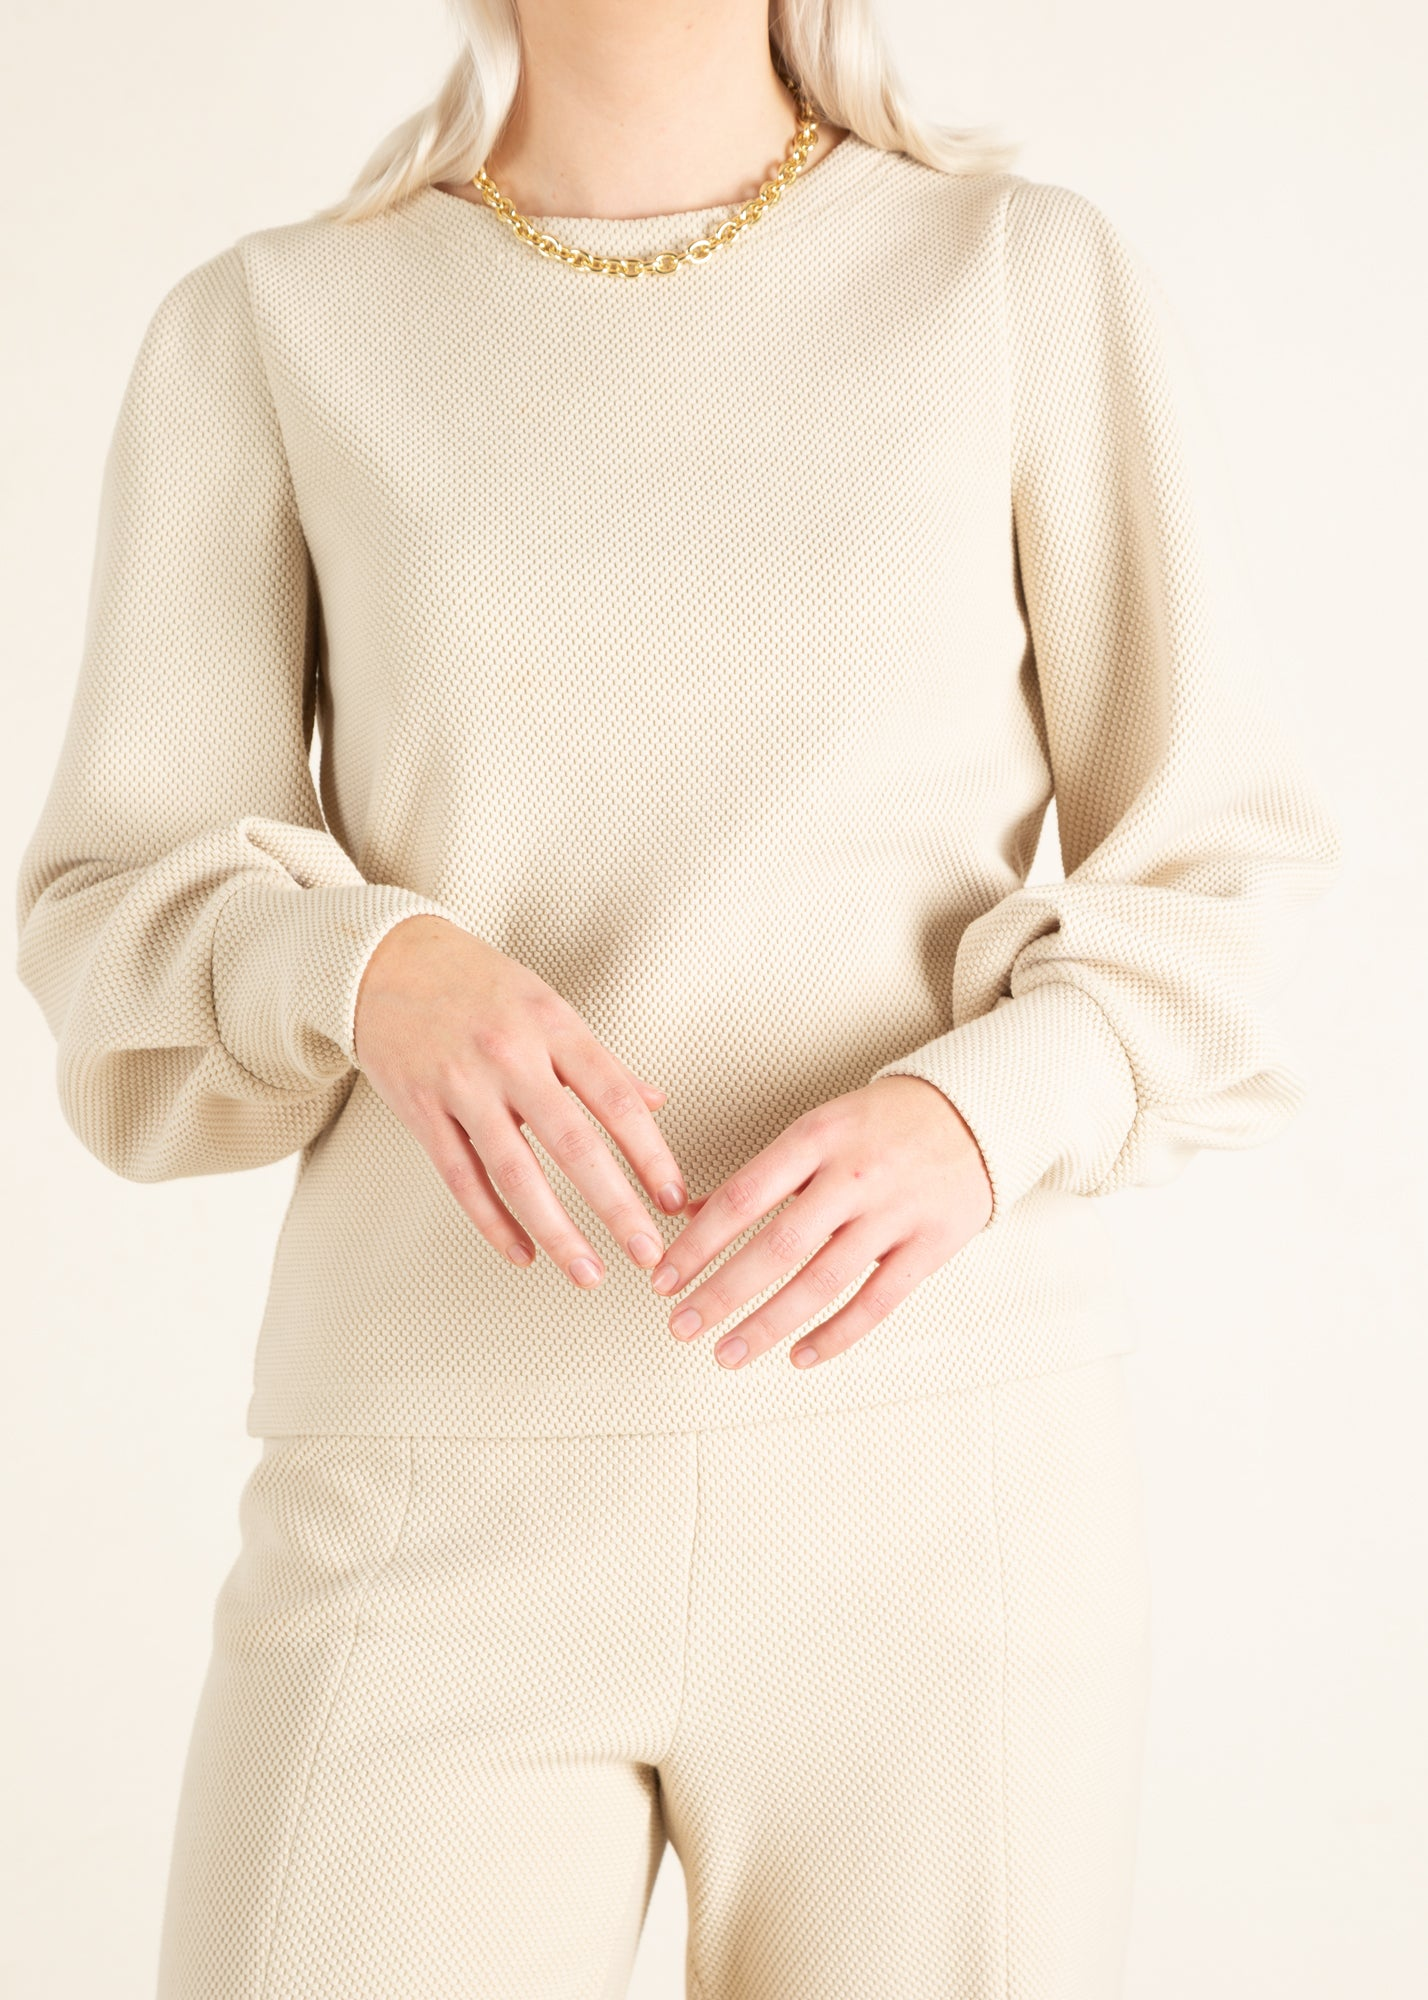 Dames sweater in beige tint en pofmouwen